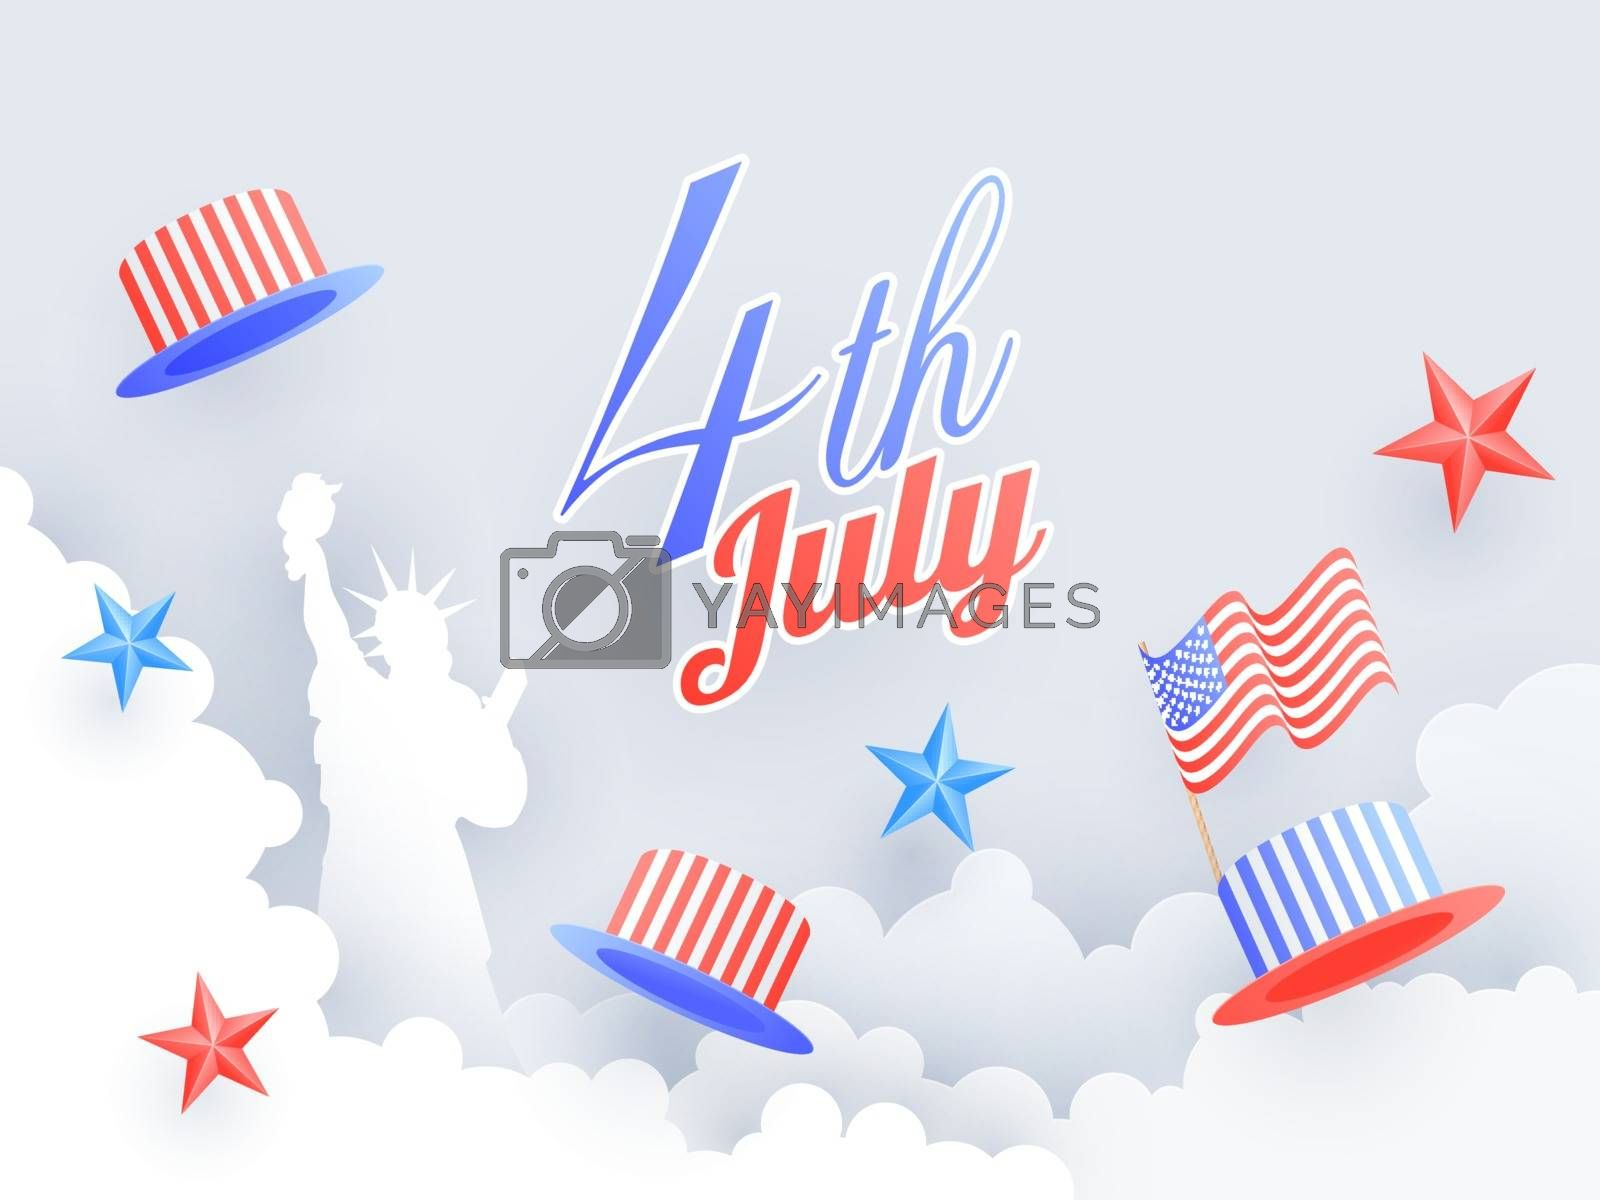 4th of July celebration poster or banner design decorated with Statue of liberty, uncle sam hat  and colorful stars on paper cut cloudy background.